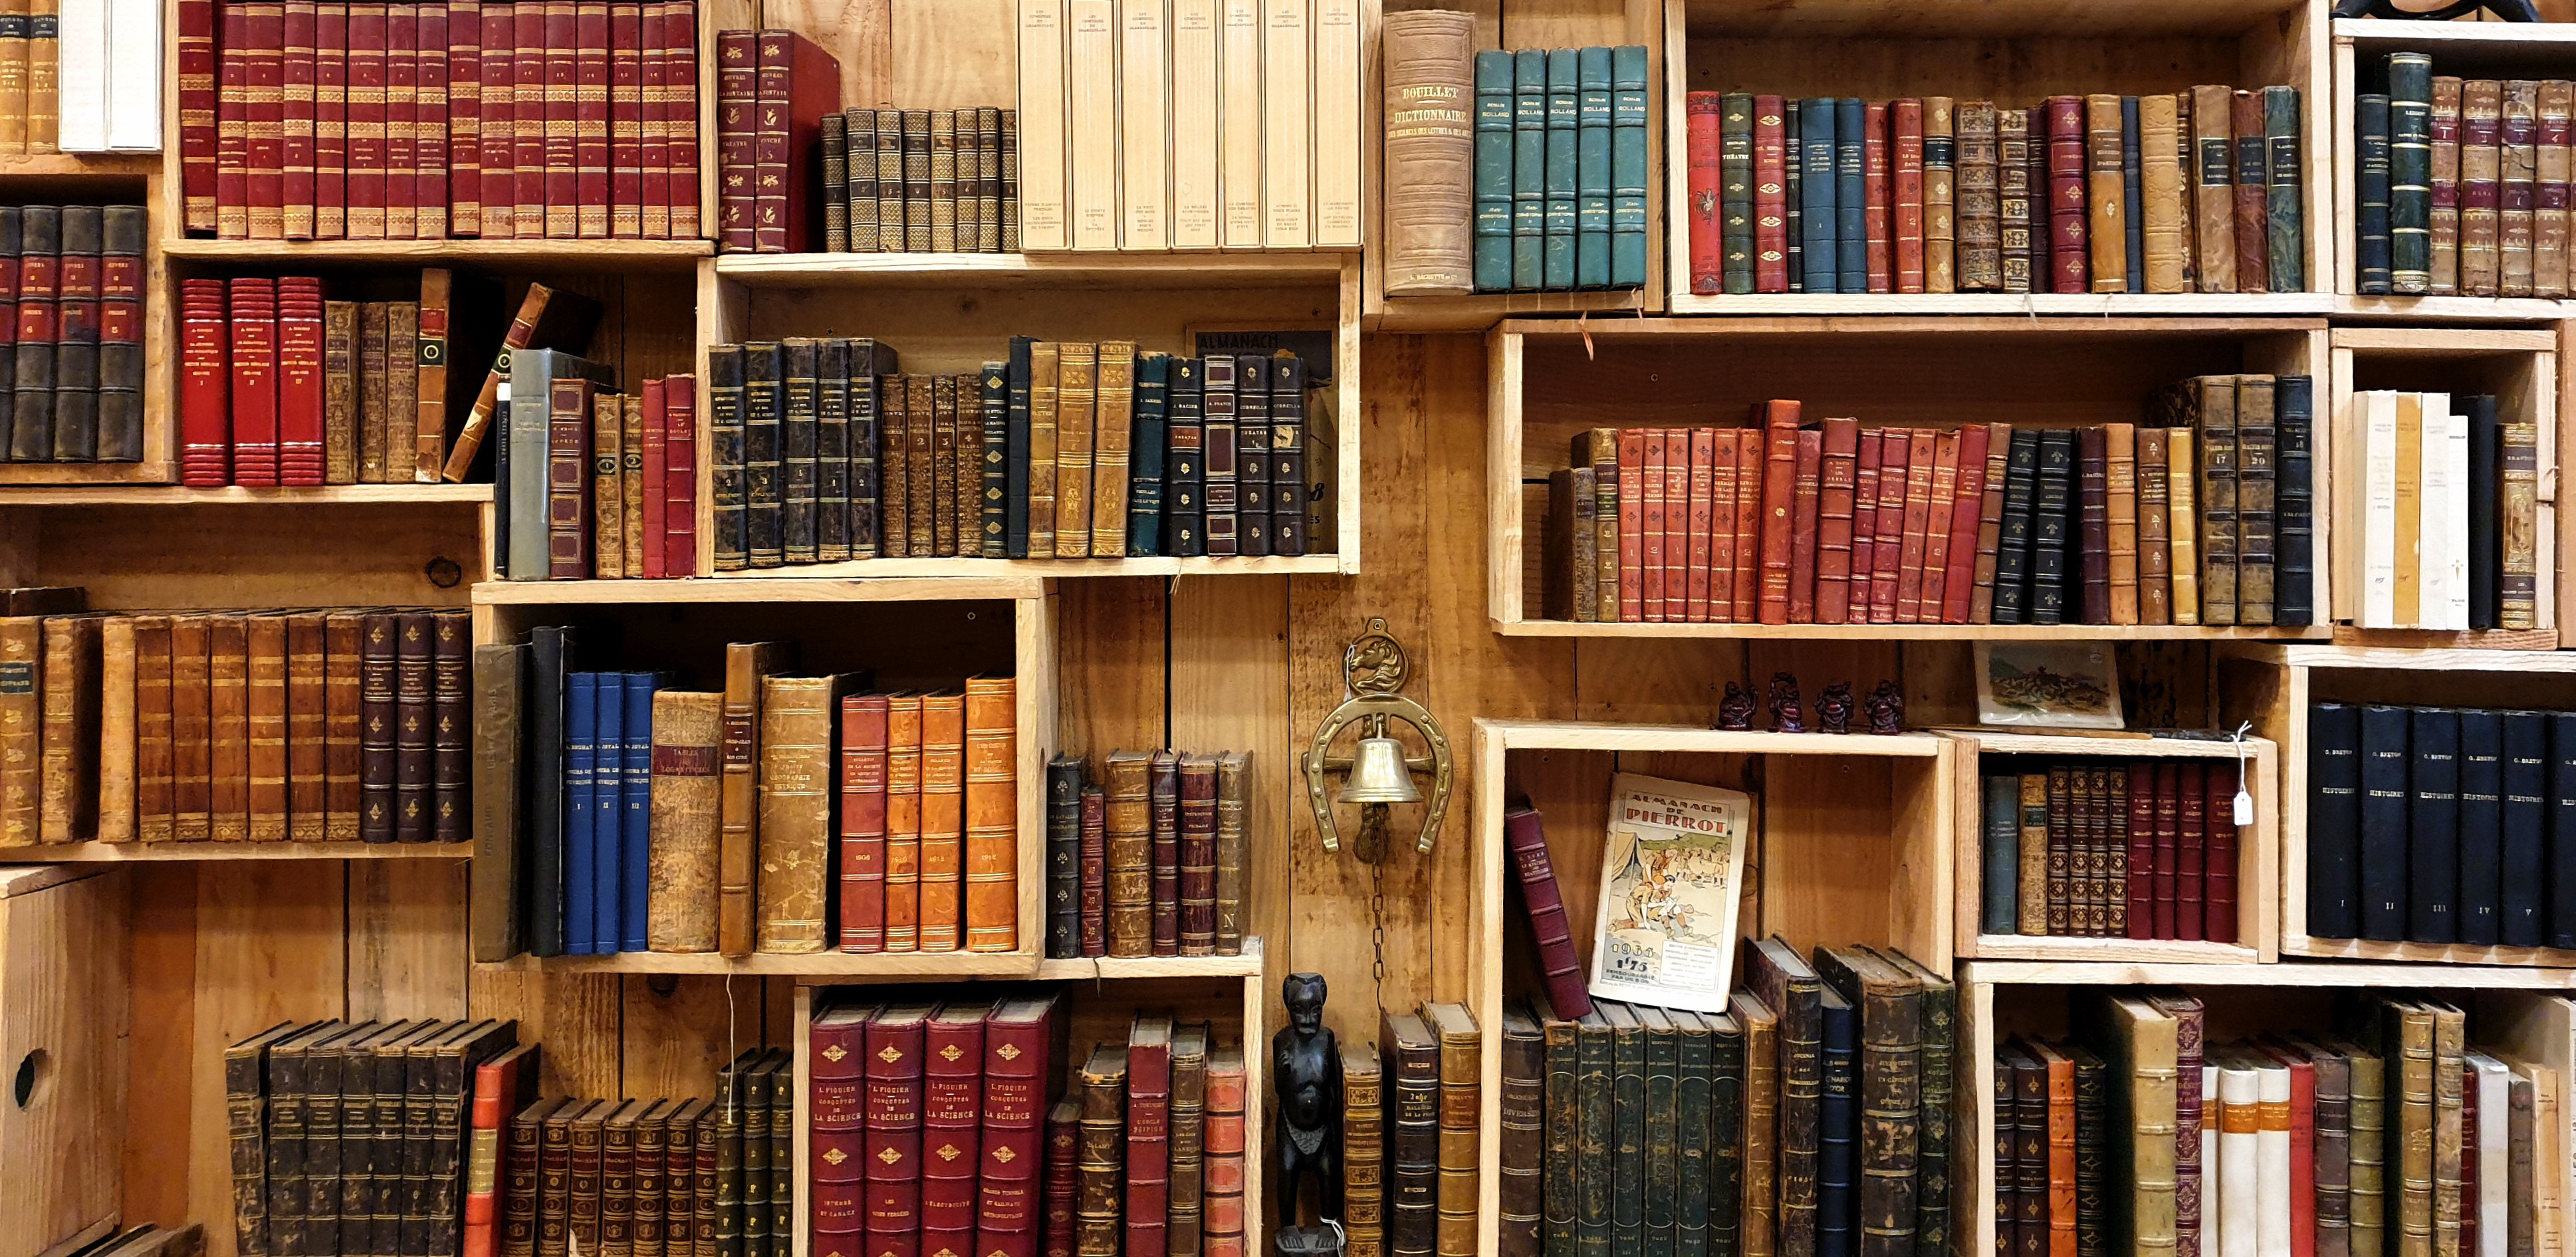 Shelves that look like boxes hold vintage books upon a wooden wall.